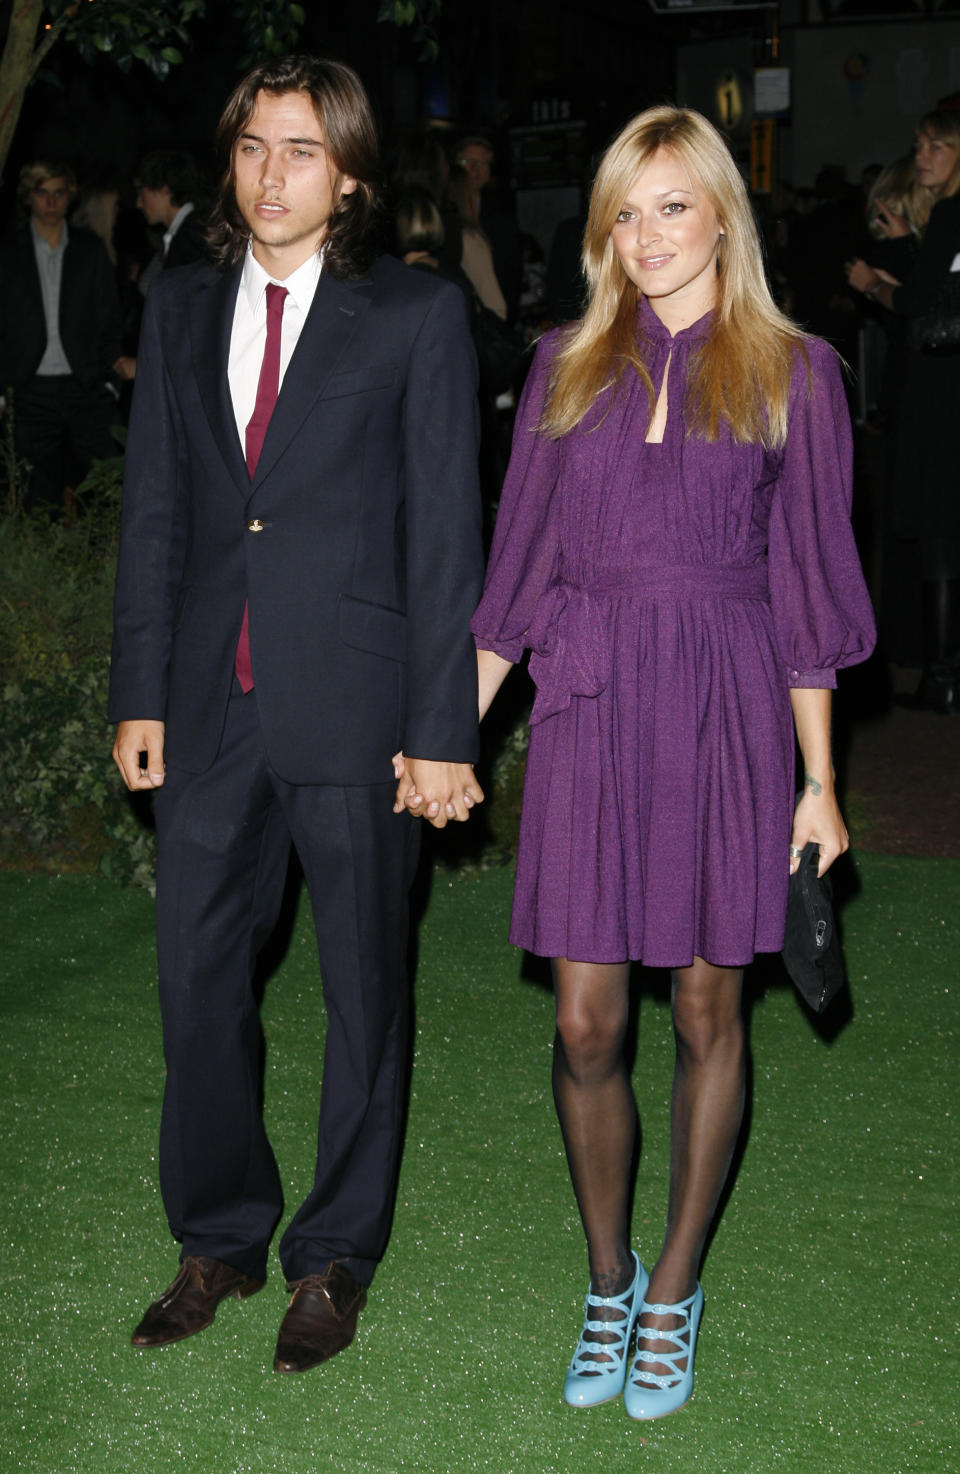 Fearne Cotton and boyfriend Jesse Jenkins arriving at the European Premiere of Stardust, Odeon Cinema, Leicester Square, London.